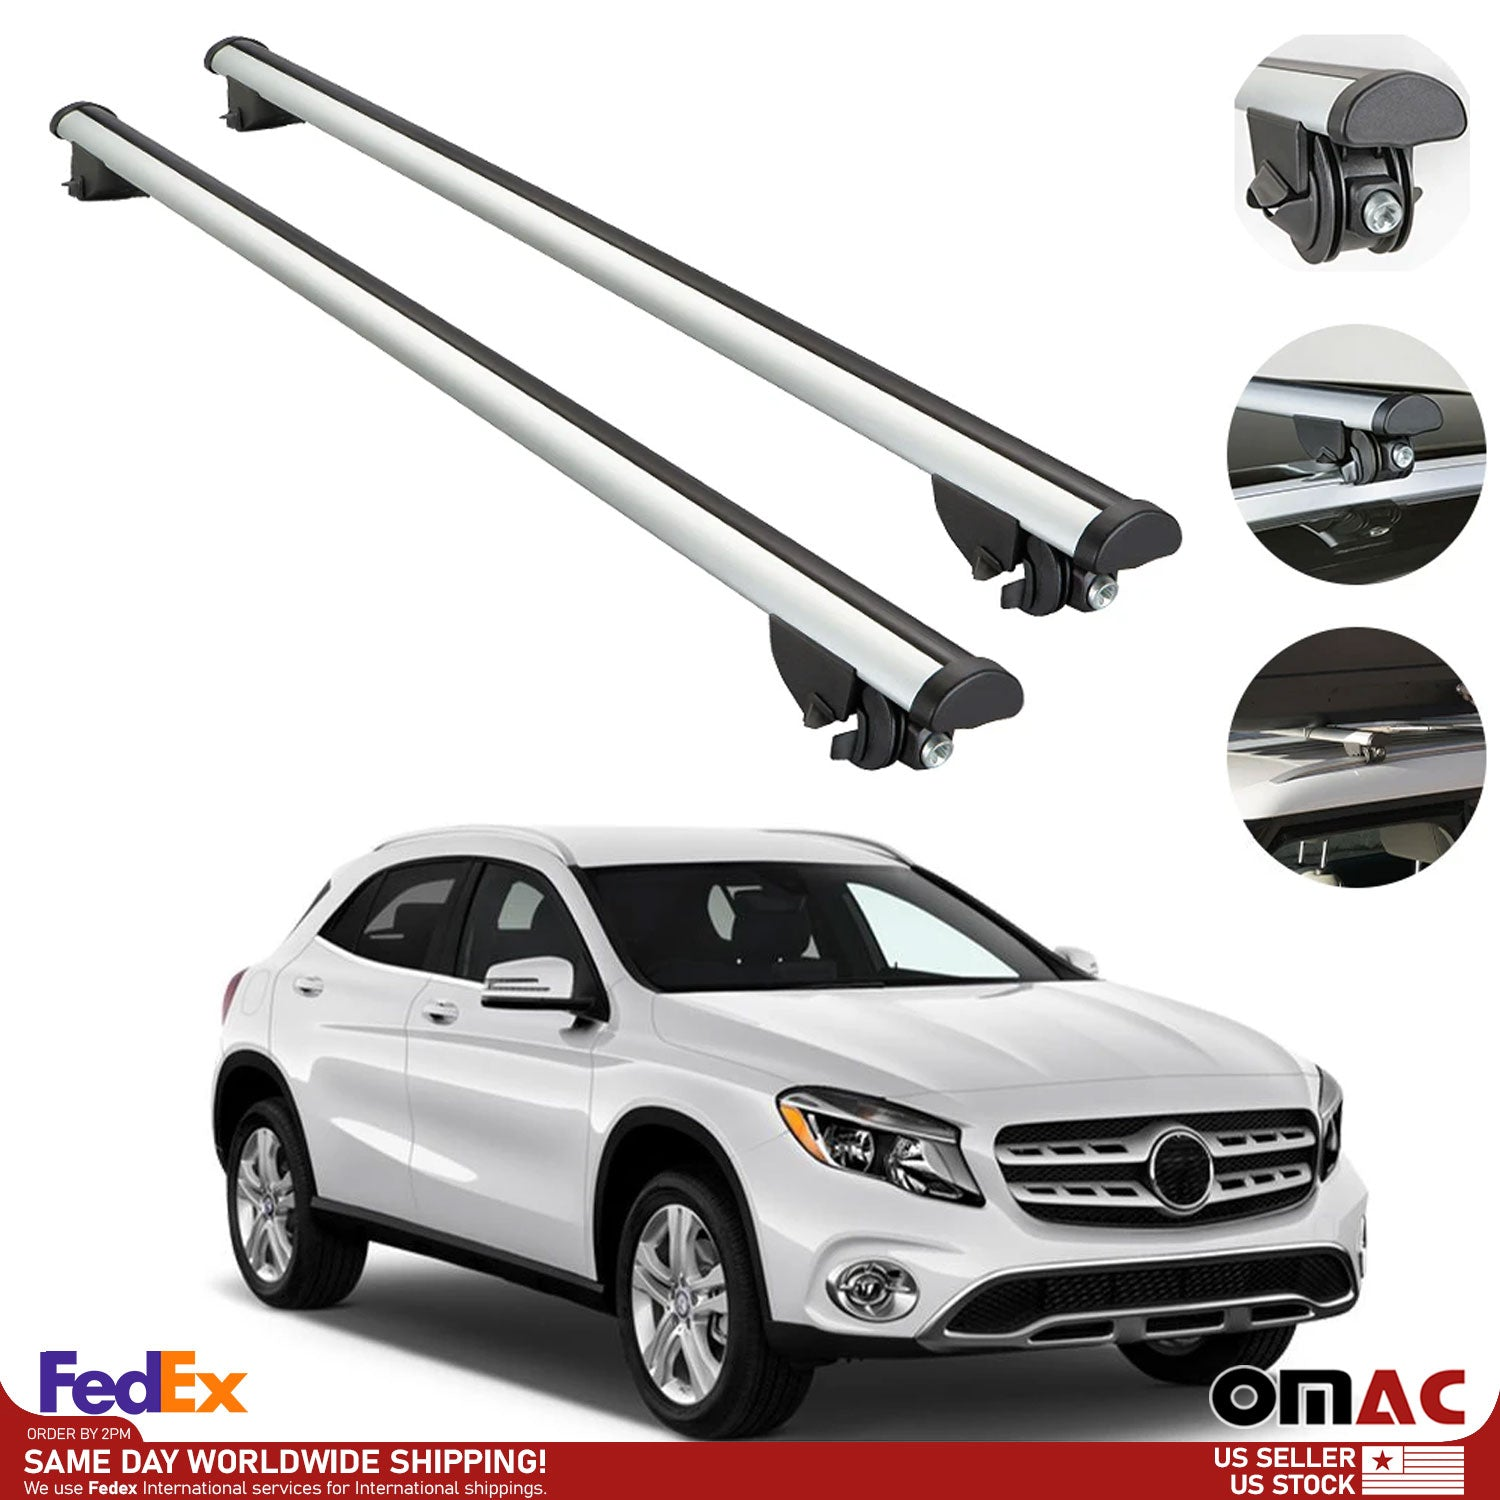 Roof Rack Cross Bars Luggage Carrier Silver Set for Mercedes GLA 2014-2019